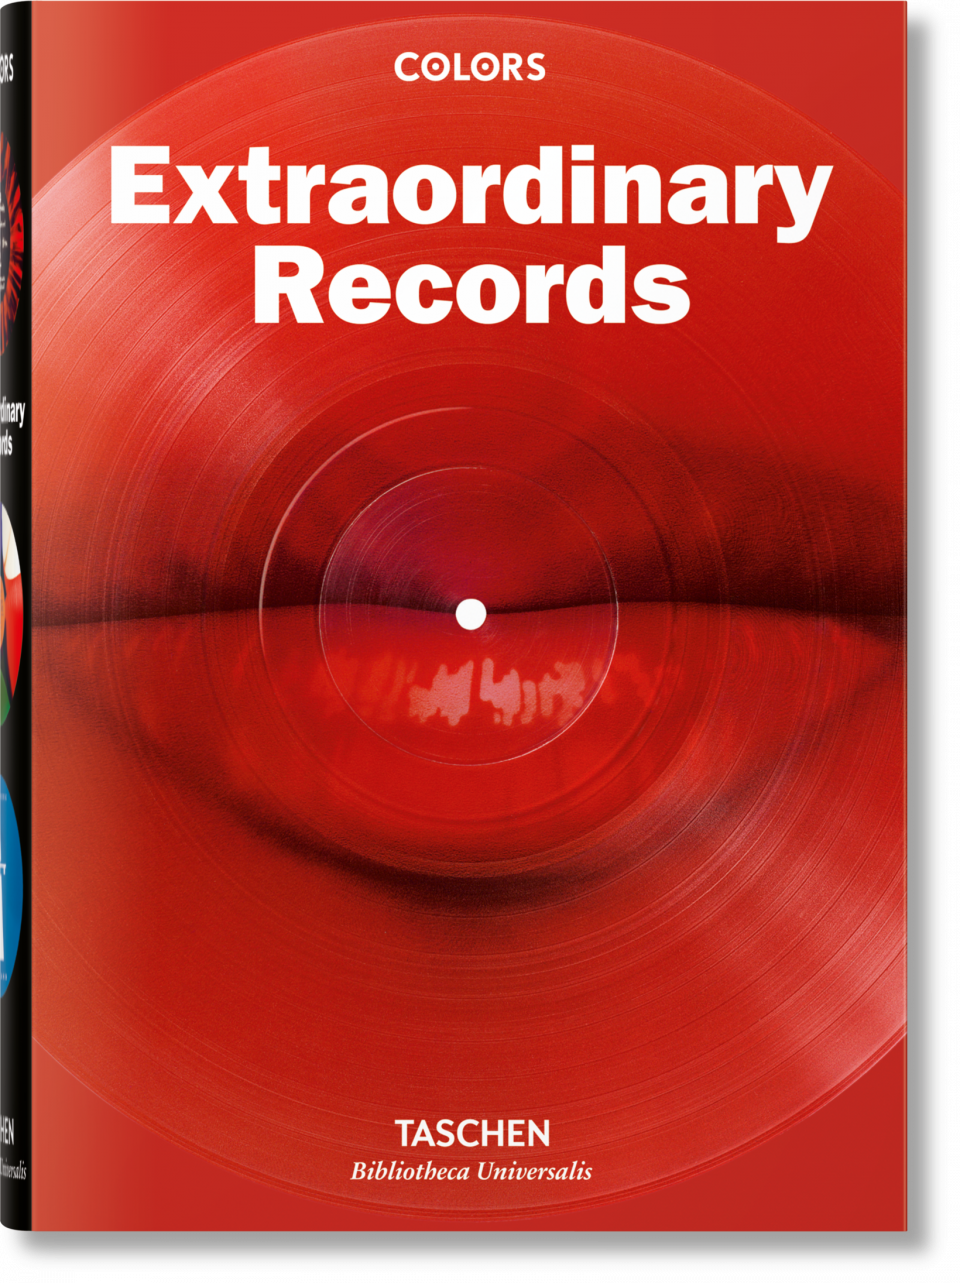 Extraordinary recordings - Available at Taschen, £15.00